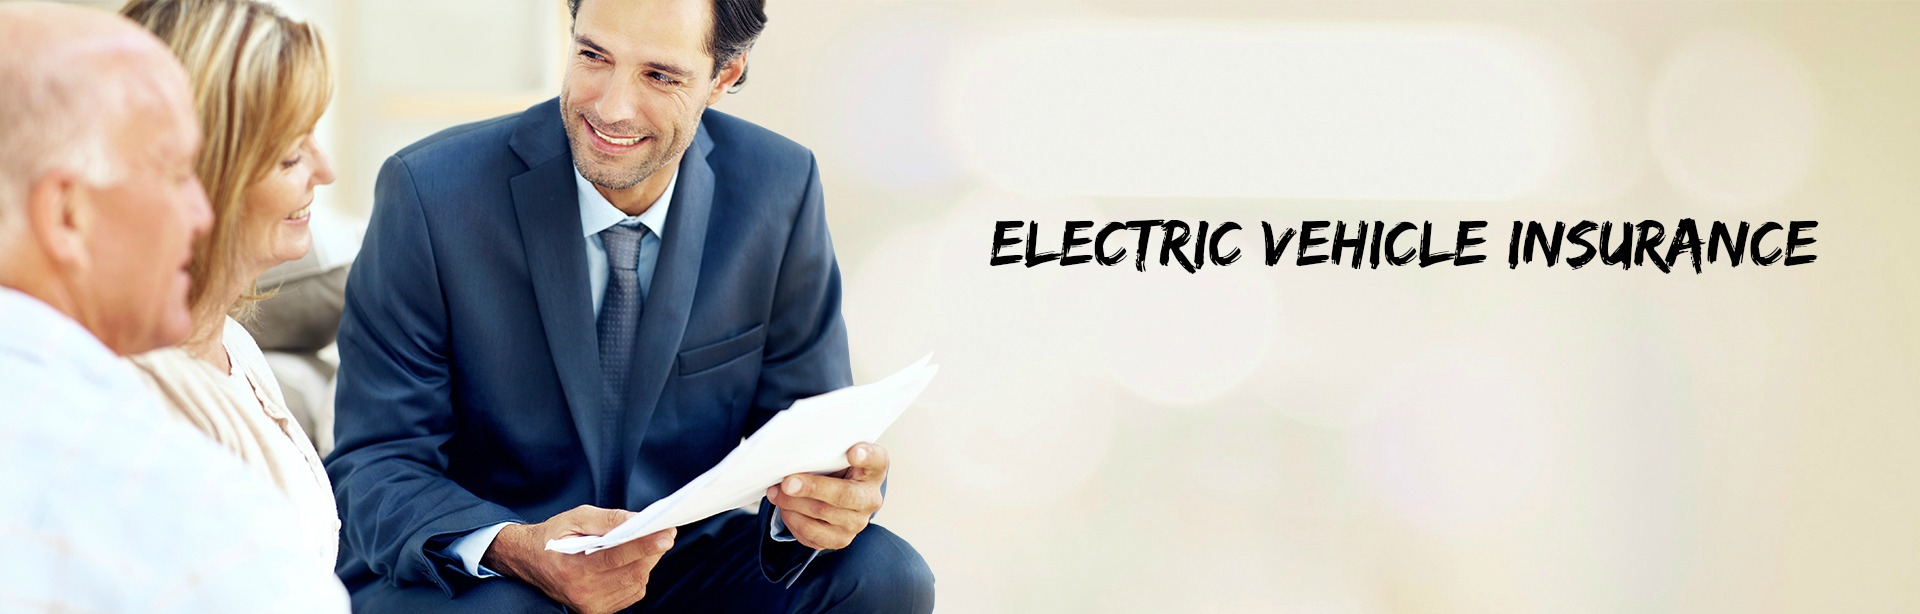 Electric Vehicle Insurance